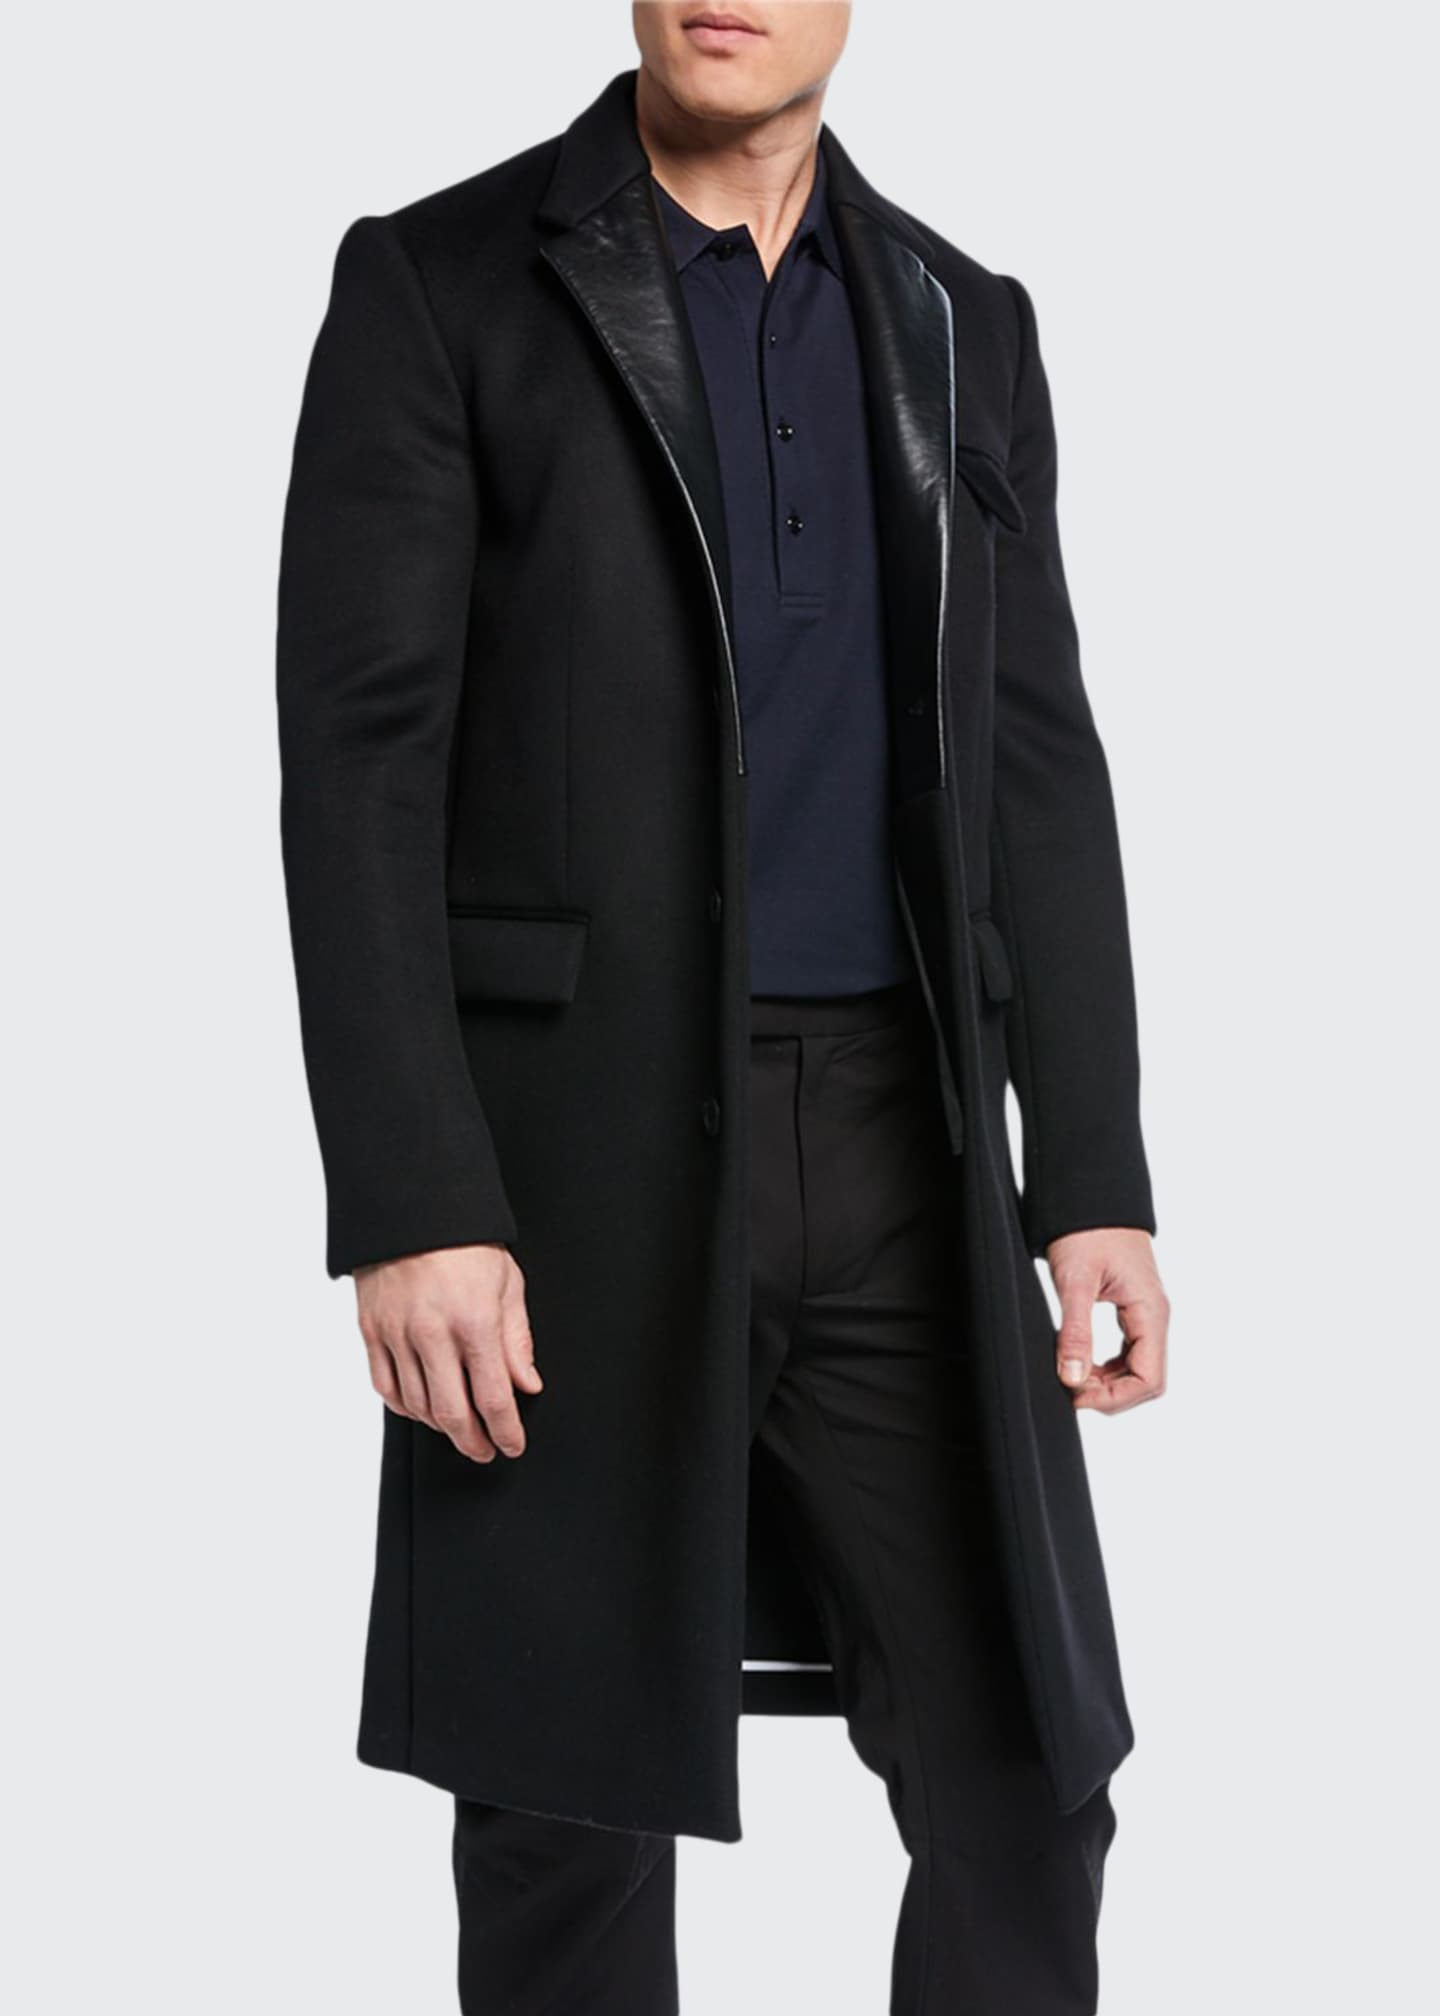 Bottega Veneta Men's Single-Breasted Overcoat with Leather Lapels